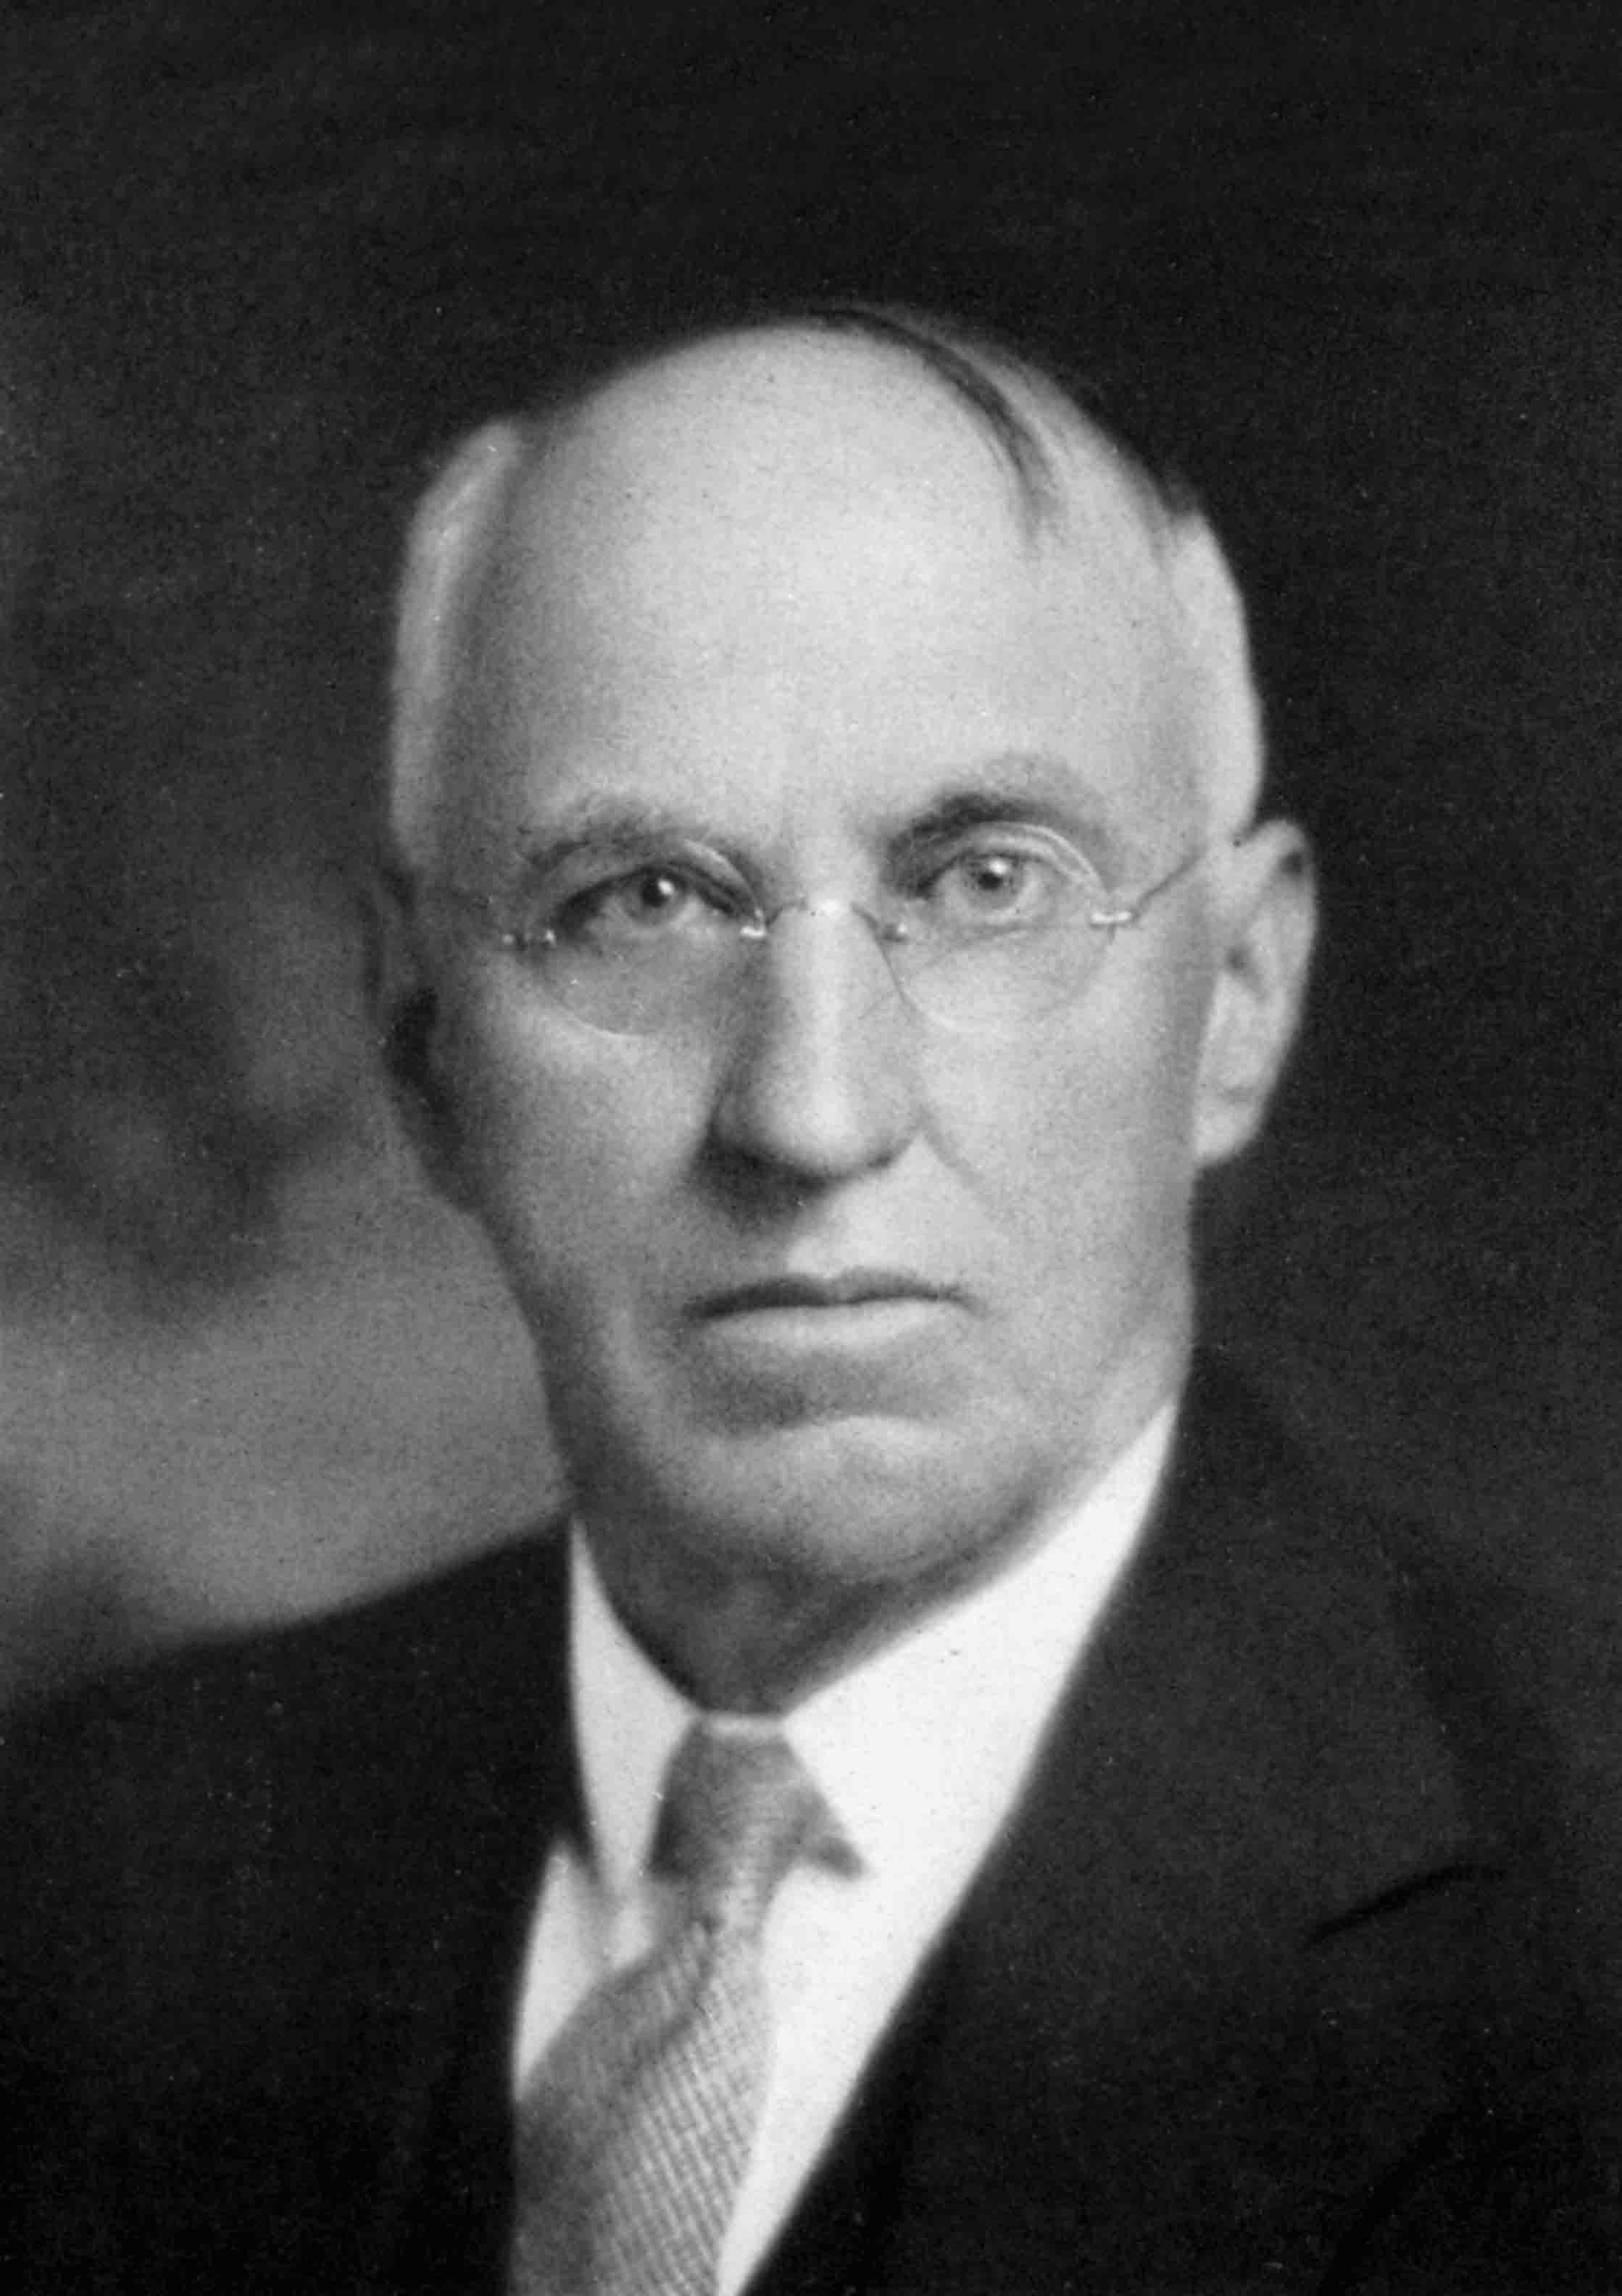 William C. McConnell, Mars Hill College Trustee, benefactor, and namesake of McConnell Gymnasium